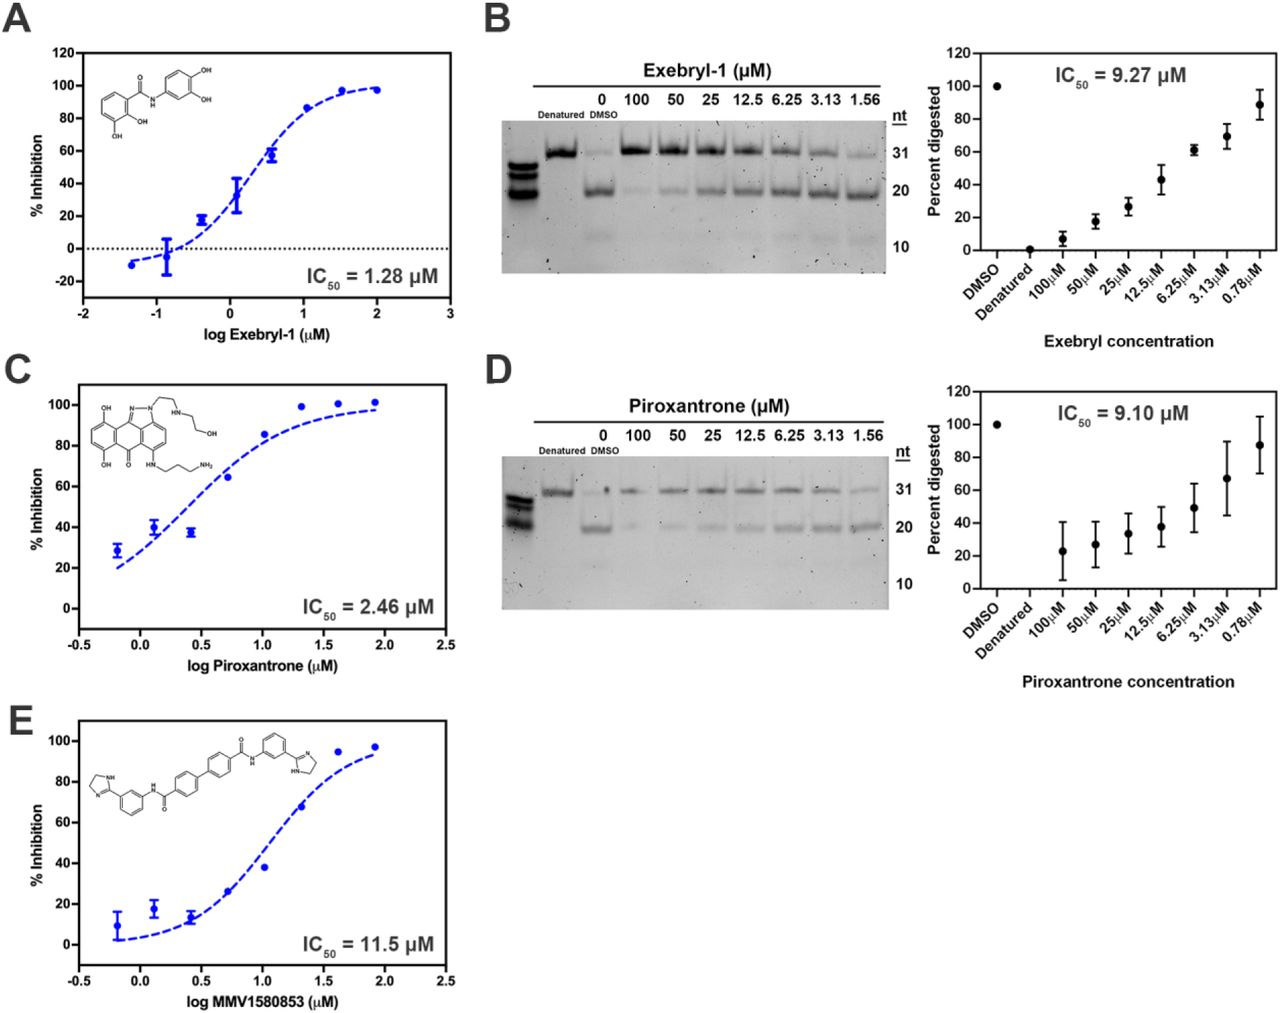 Dose response curves of select nsp15 hits. Inhibitor structures and 3° FRET assay dose-response curves with calculated IC 50 values for Exebryl-1 ( A ), Piroxantrone ( C ), and MMV1580853 ( E ). Nsp15 (25 nM) was incubated with 2-fold or 3-fold serial concentrations of compound and incubated with the substrate <t>5'6-</t> <t>FAM/dArUdAdA/3'-TAMRA</t> (0.5 μM) at ambient temperature for 1 h. Results of a polyacrylamide gel-based RNA cleavage assay for Exebryl-1 ( B ) and Piroxantrone ( D ). nsp15 (0.78 μM) and poly(rA) (500 ng) was incubated with 2-fold serial concentrations of each compound and incubated at ambient temperature for 2 h. Cleavage products were separated from uncleaved poly(rA) by electrophoresis on a 15% TBE-urea polyacrylamide gel and the % cleavage activity calculated by quantitating the relative amount of cleaved (20 nt lower band) vs uncleaved (31 nt top band) substrate in each sample relative to a DMSO control. Gel-based RNA cleavage inhibition of MMV1580853 was observed, but was variable from experiment to experiment, likely due to poor solubility in DMSO and assay buffer.